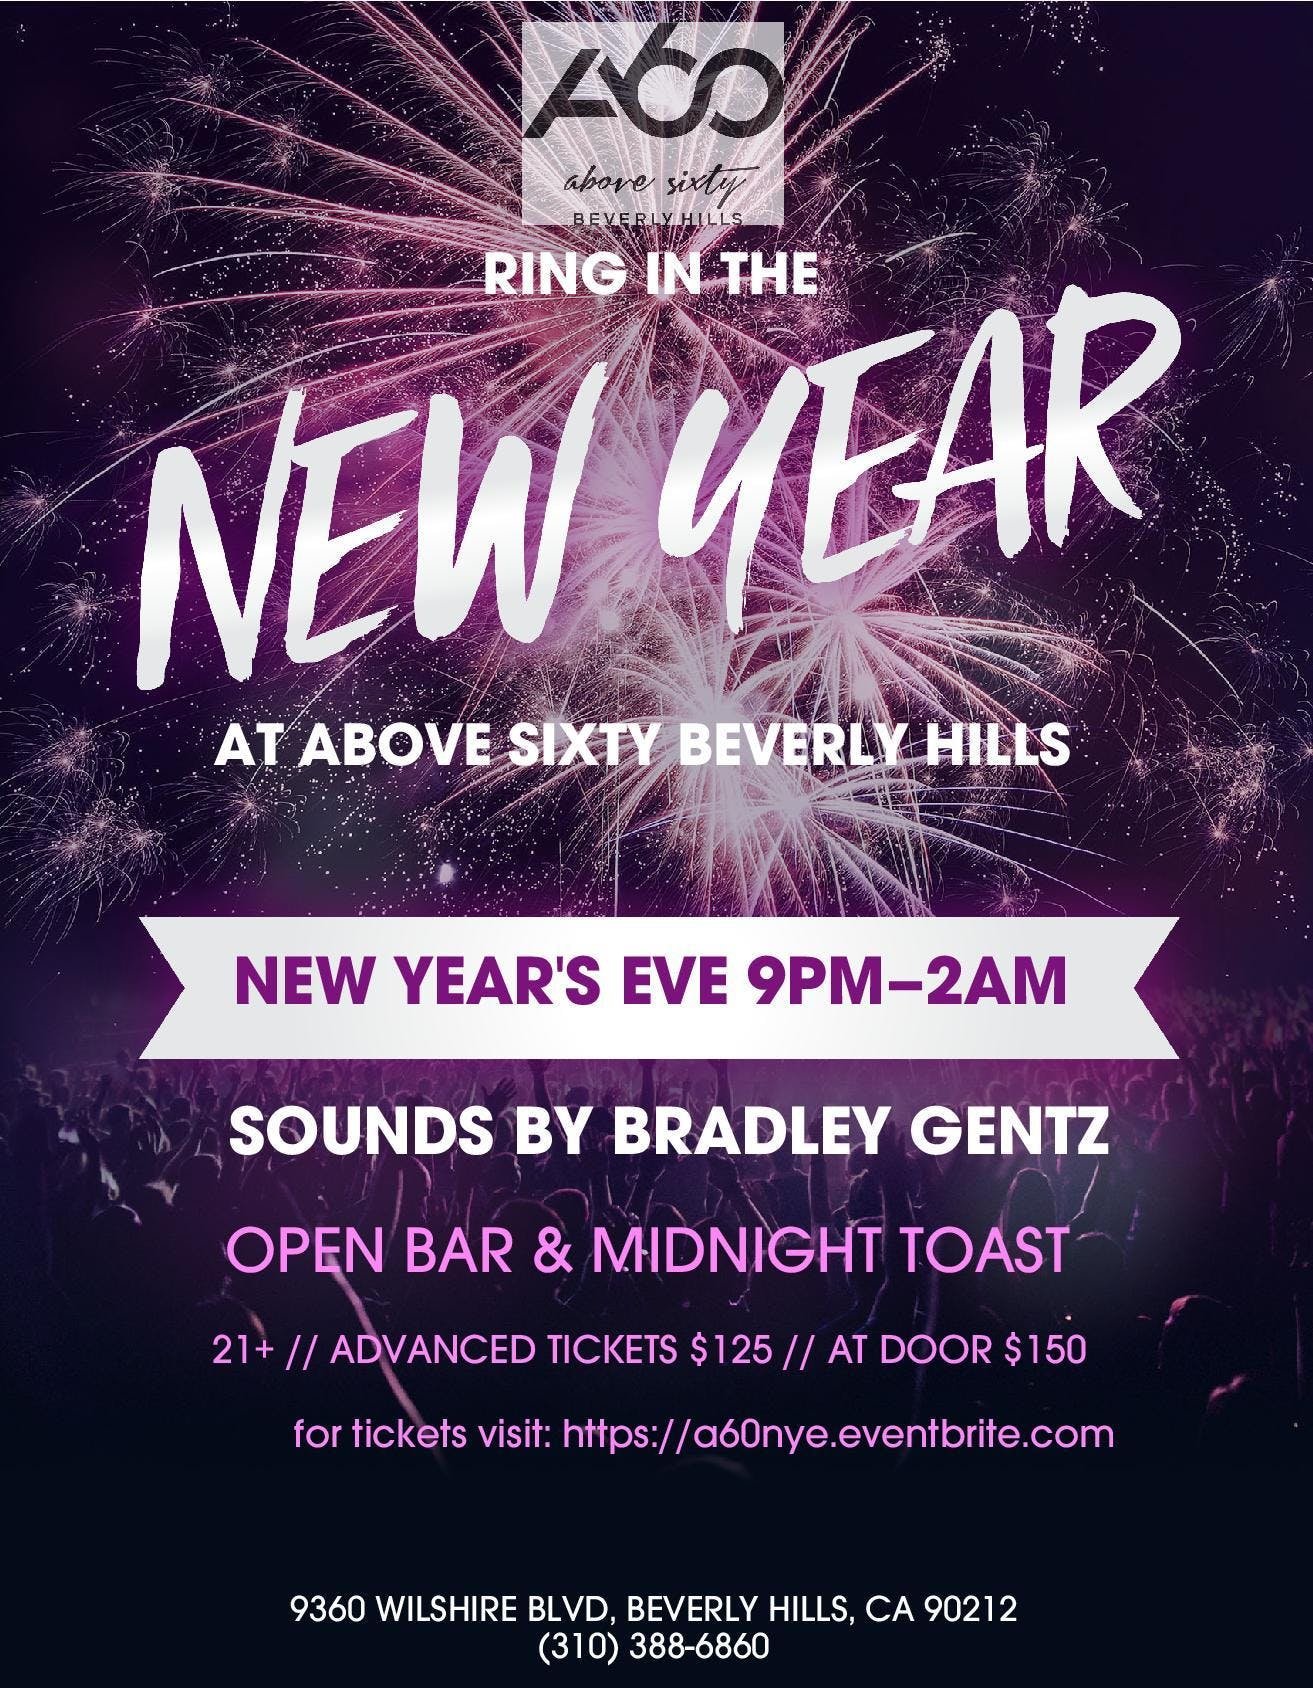 Ring In 2019 At Above SIXTY Beverly Hills